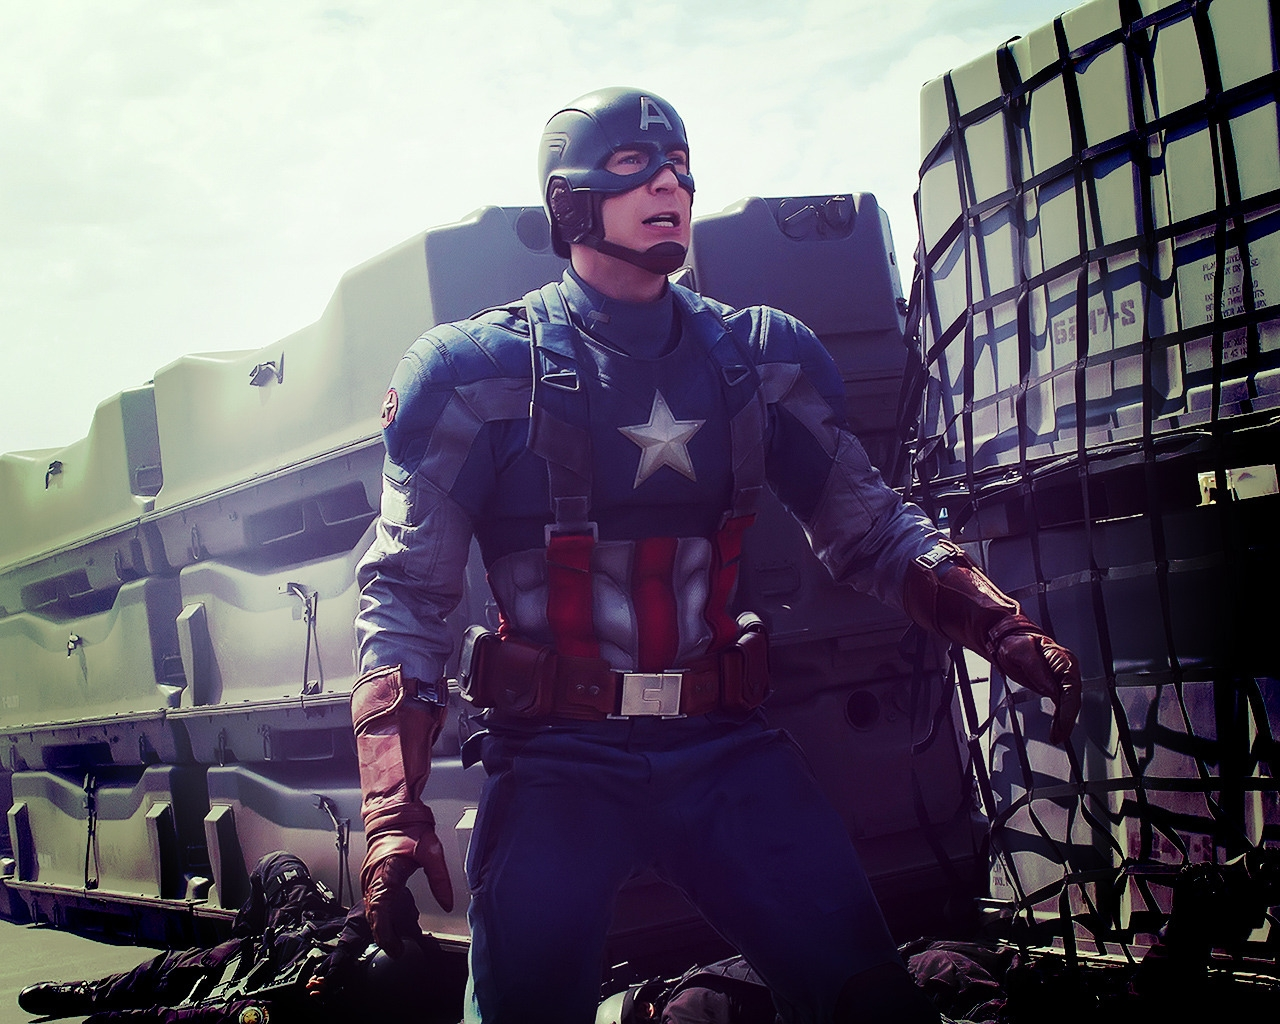 Captain America in Action for 1280 x 1024 resolution